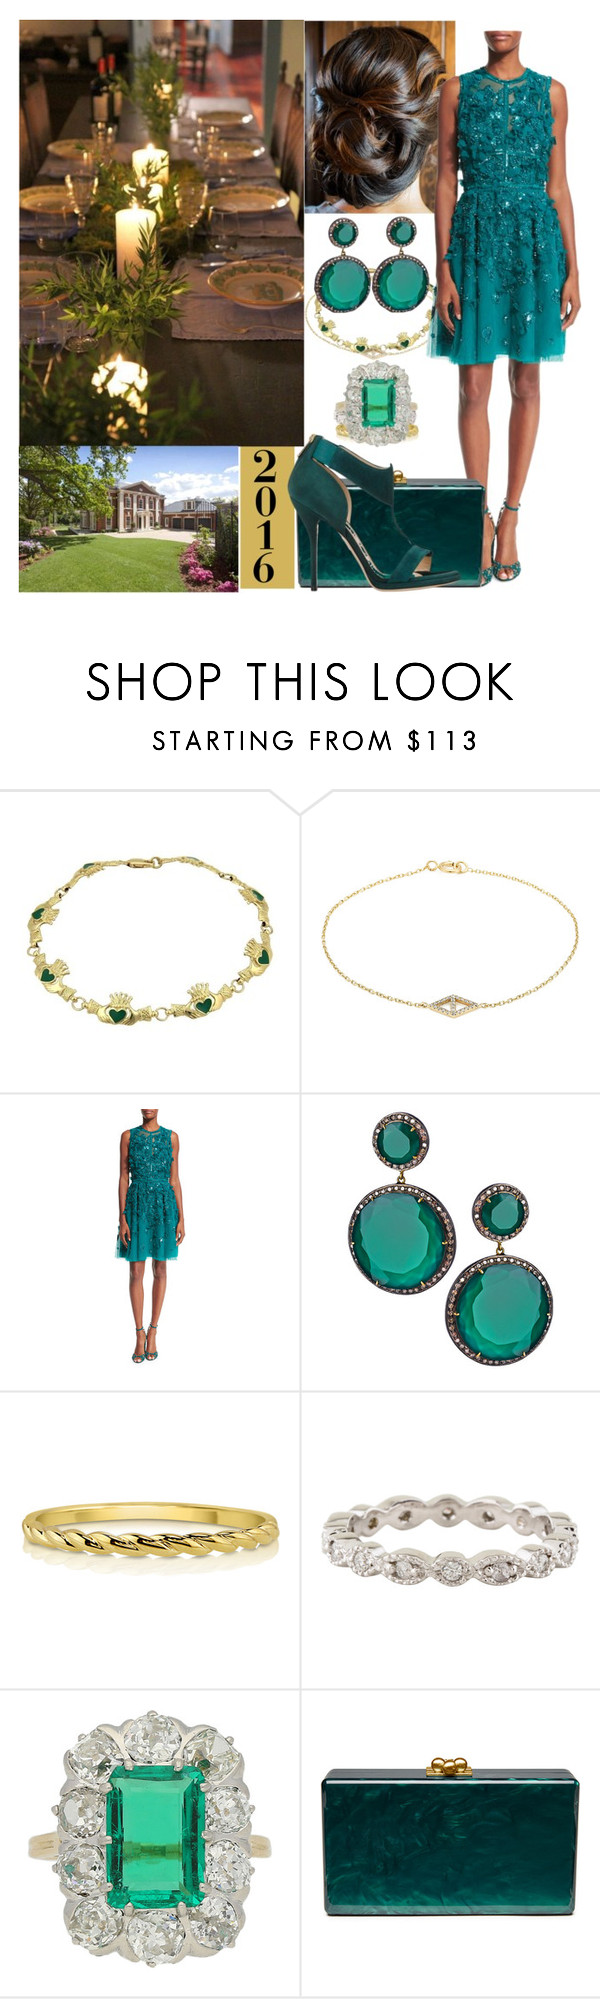 """""""Hosting a New Years Eve dinner at their home for their friends"""" by pompcircumstance ❤ liked on Polyvore featuring lito, Elie Saab, Hari Jewels, BERRICLE, Chaumet, Edie Parker, Leather Head and Paul Andrew"""